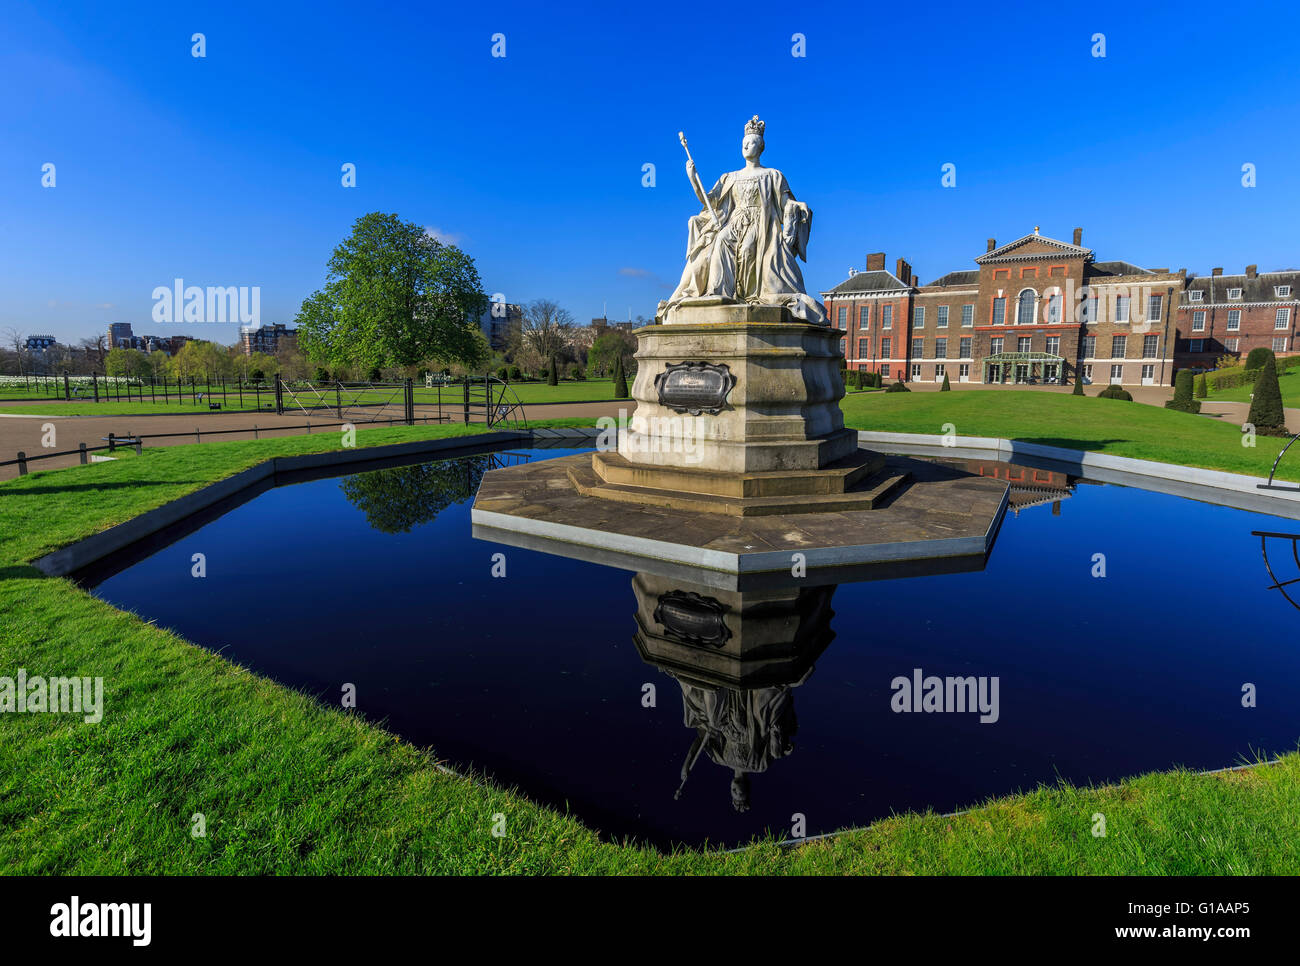 Beautiful Queen Victoria Statue around Hyde Park, London, United Kingdom - Stock Image